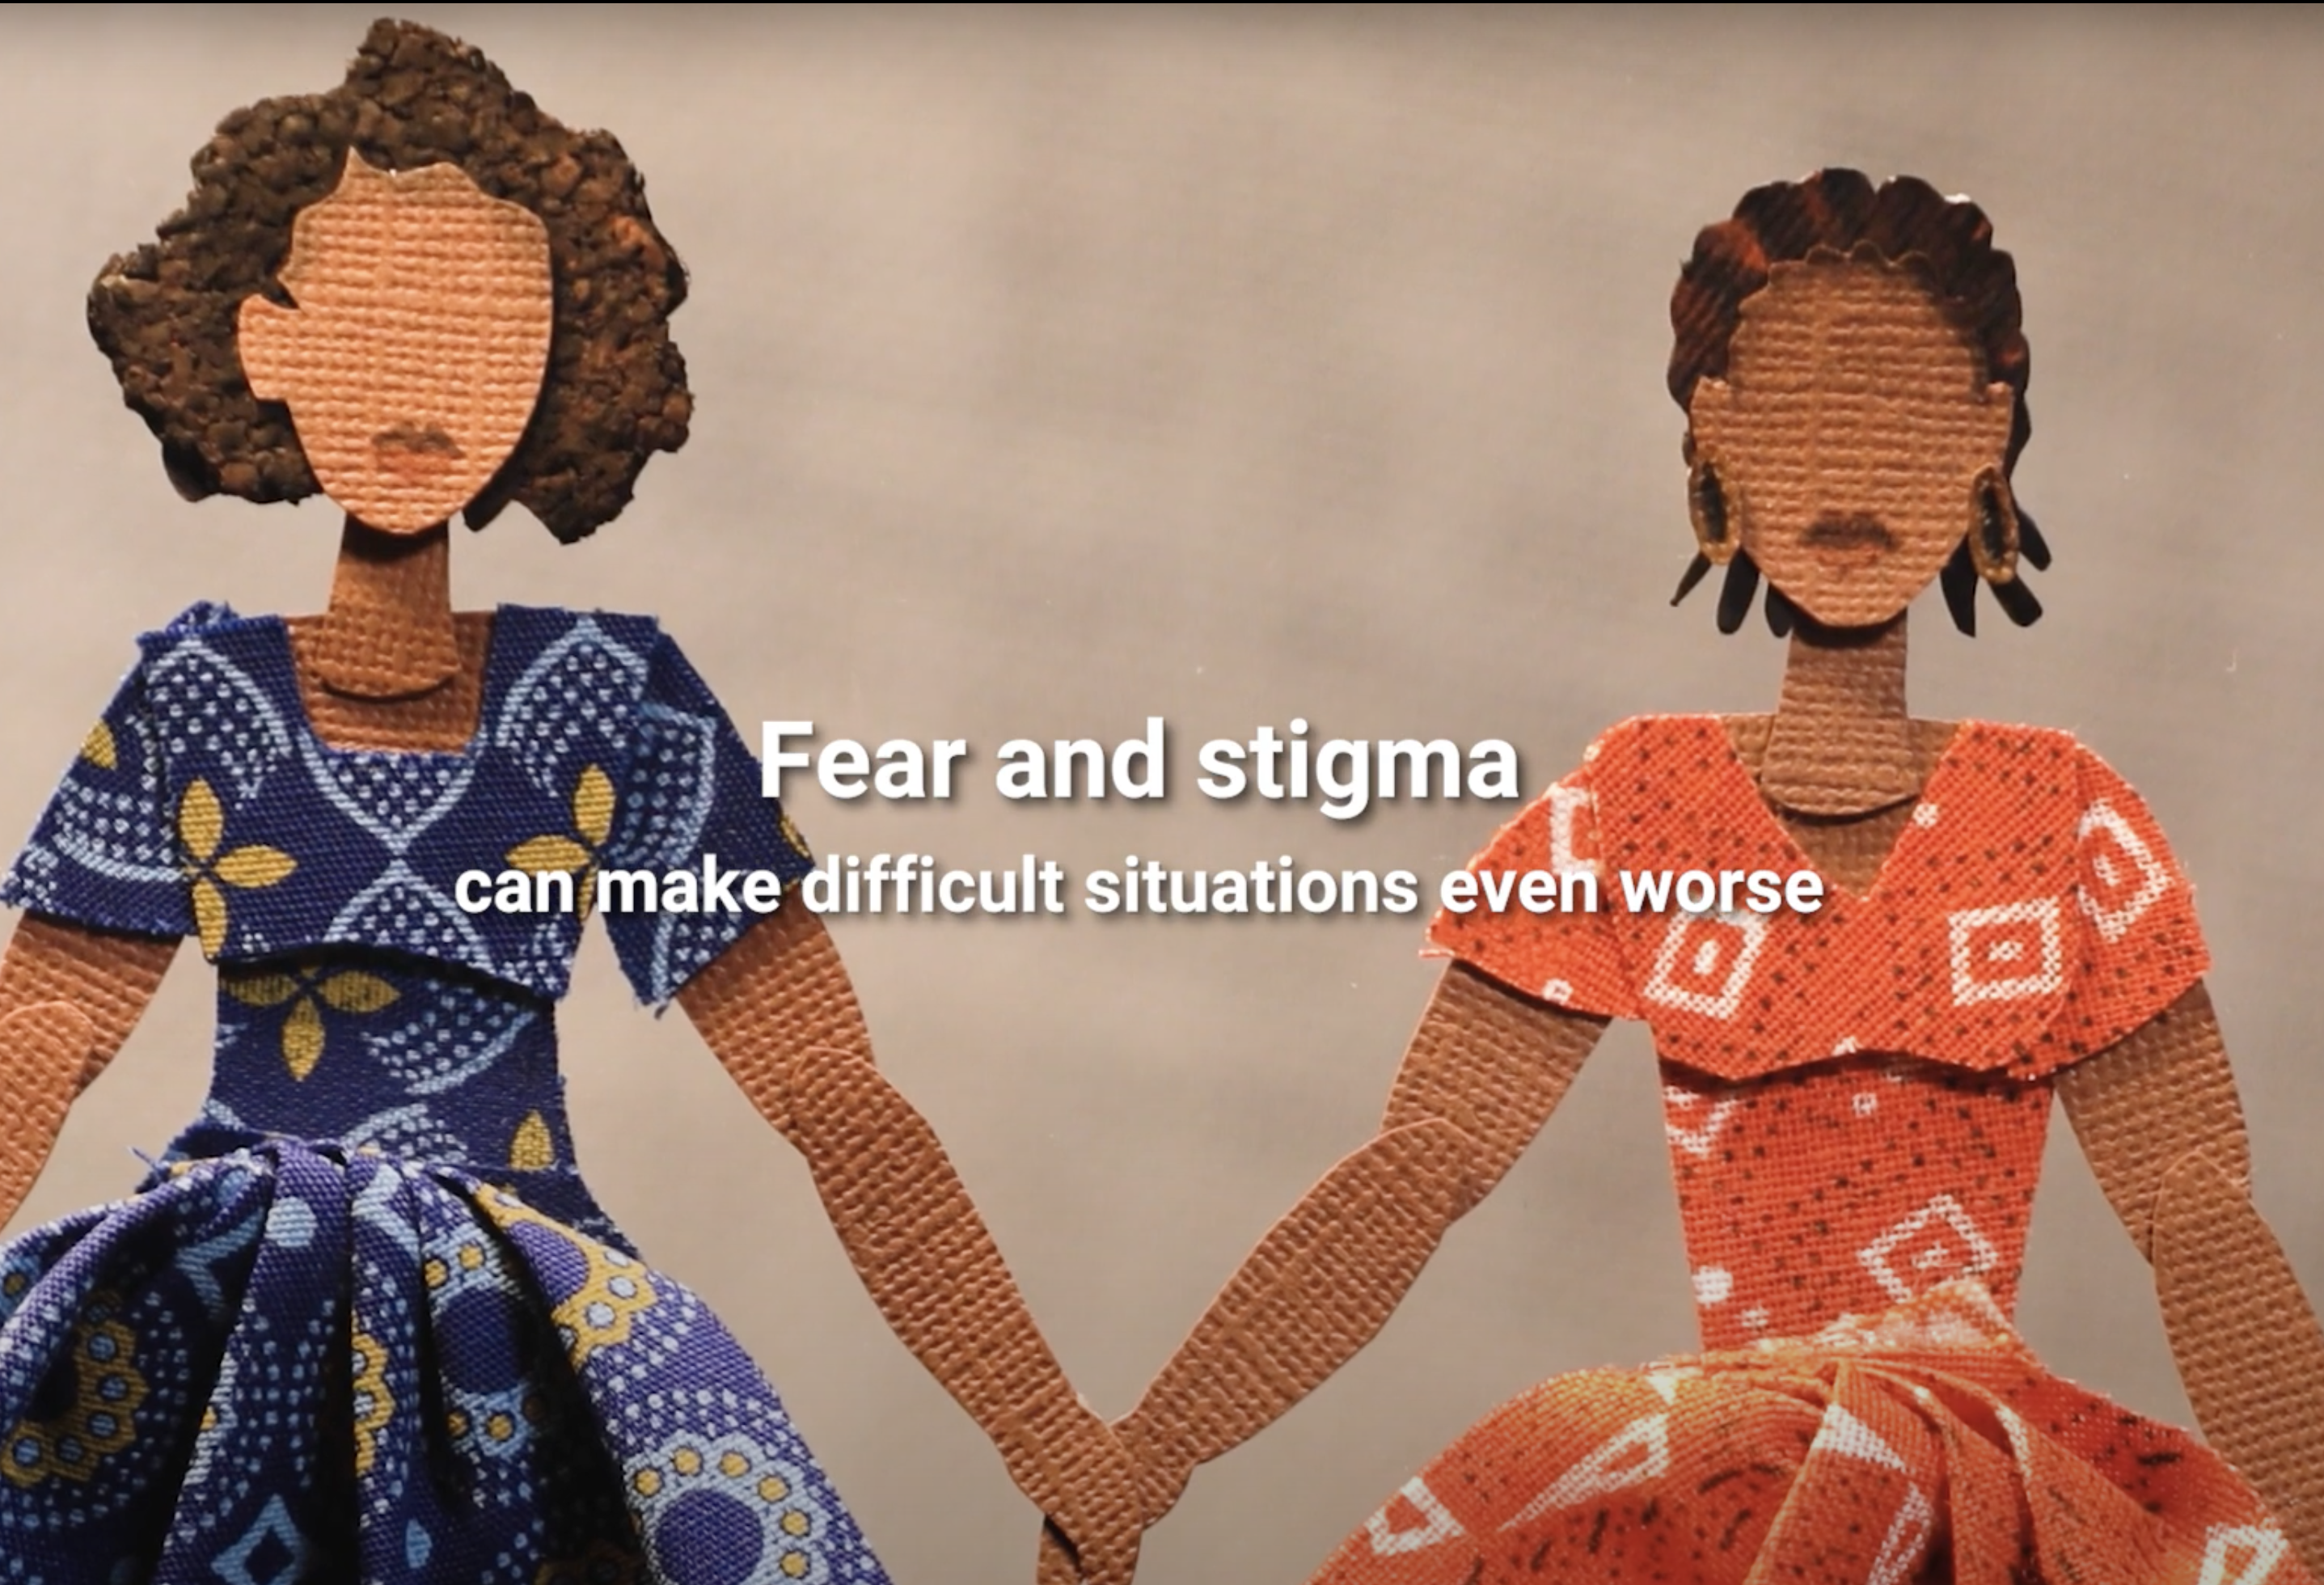 Stigma in times of COVID19: the story of Dorcas and Chantal